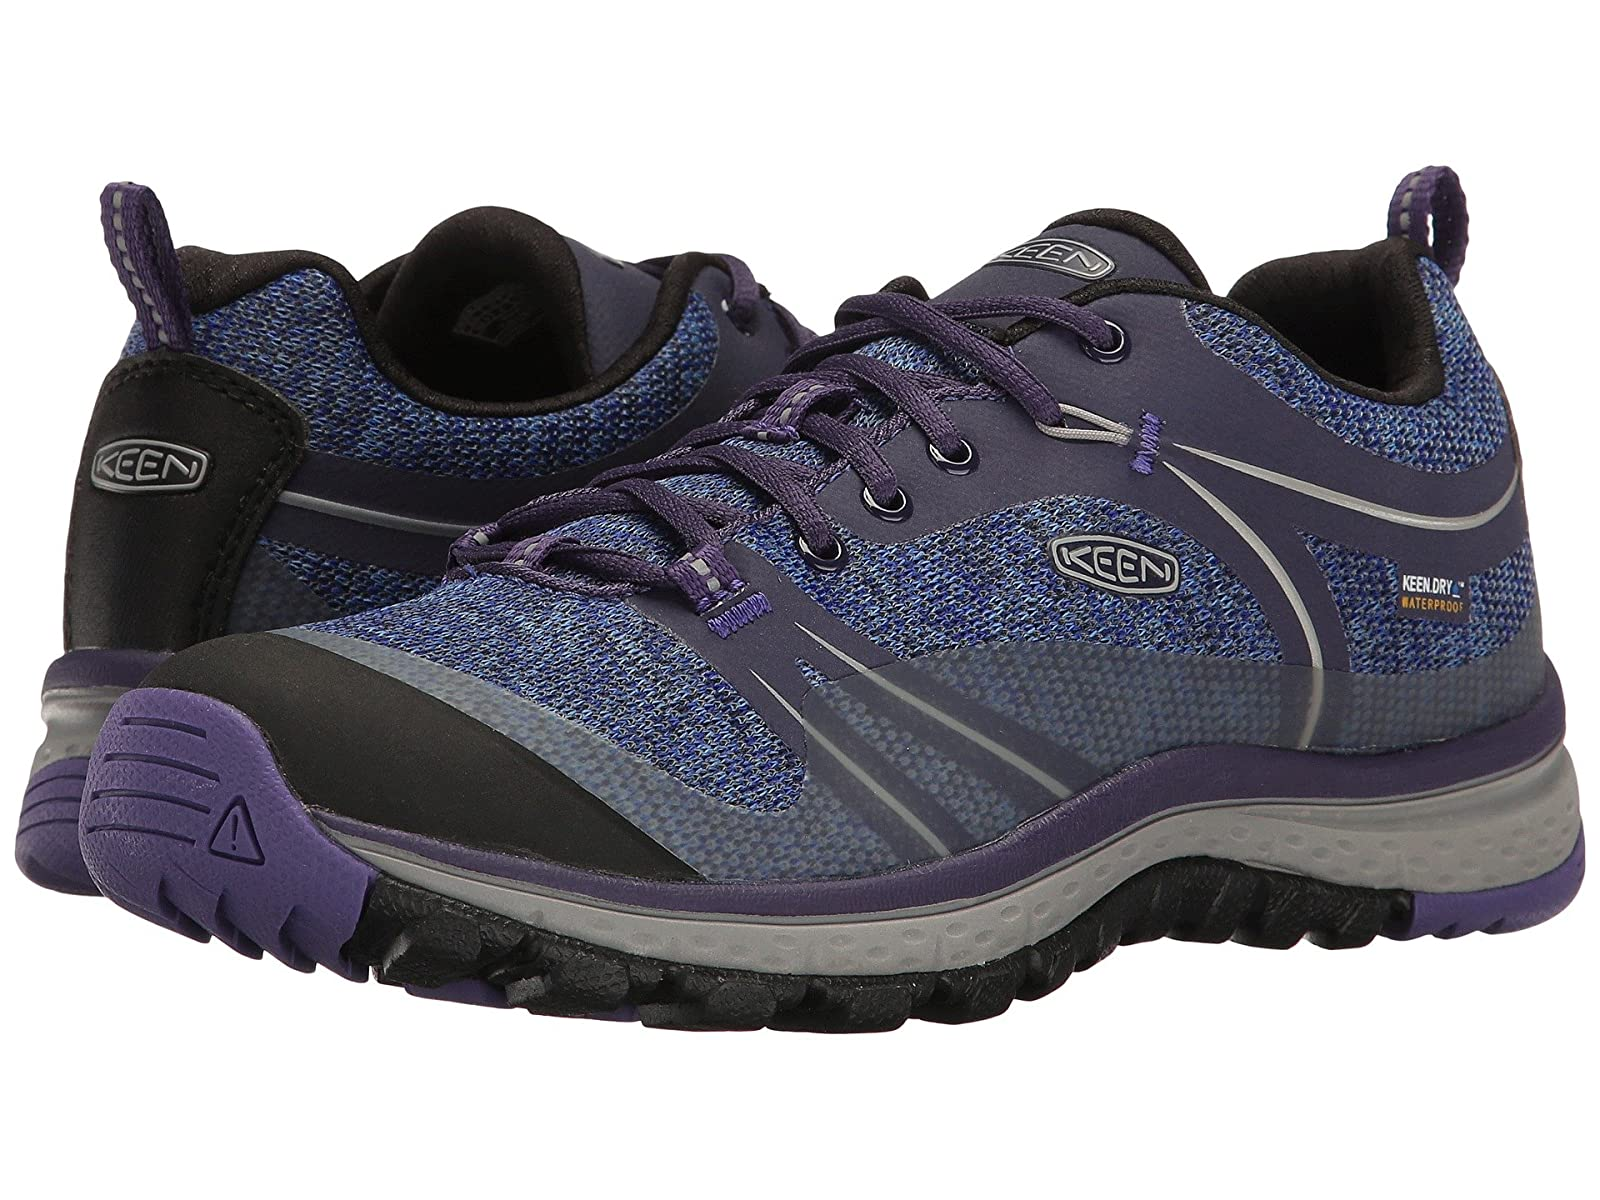 Keen Terradora WaterproofAtmospheric grades have affordable shoes